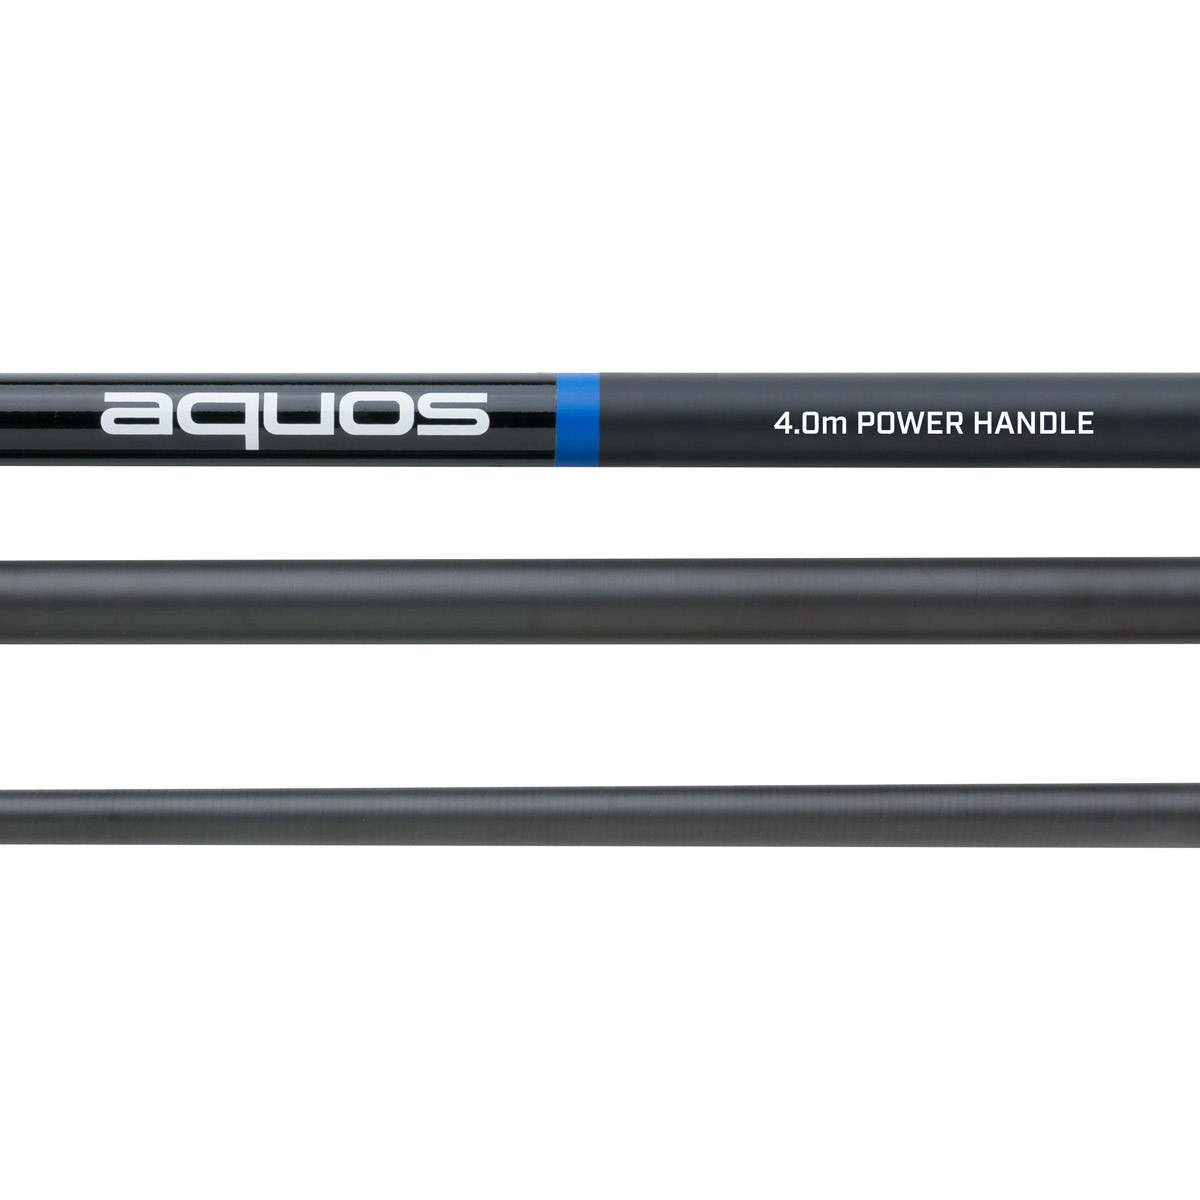 Fox Matrix Aquos Power Landing Net Handles